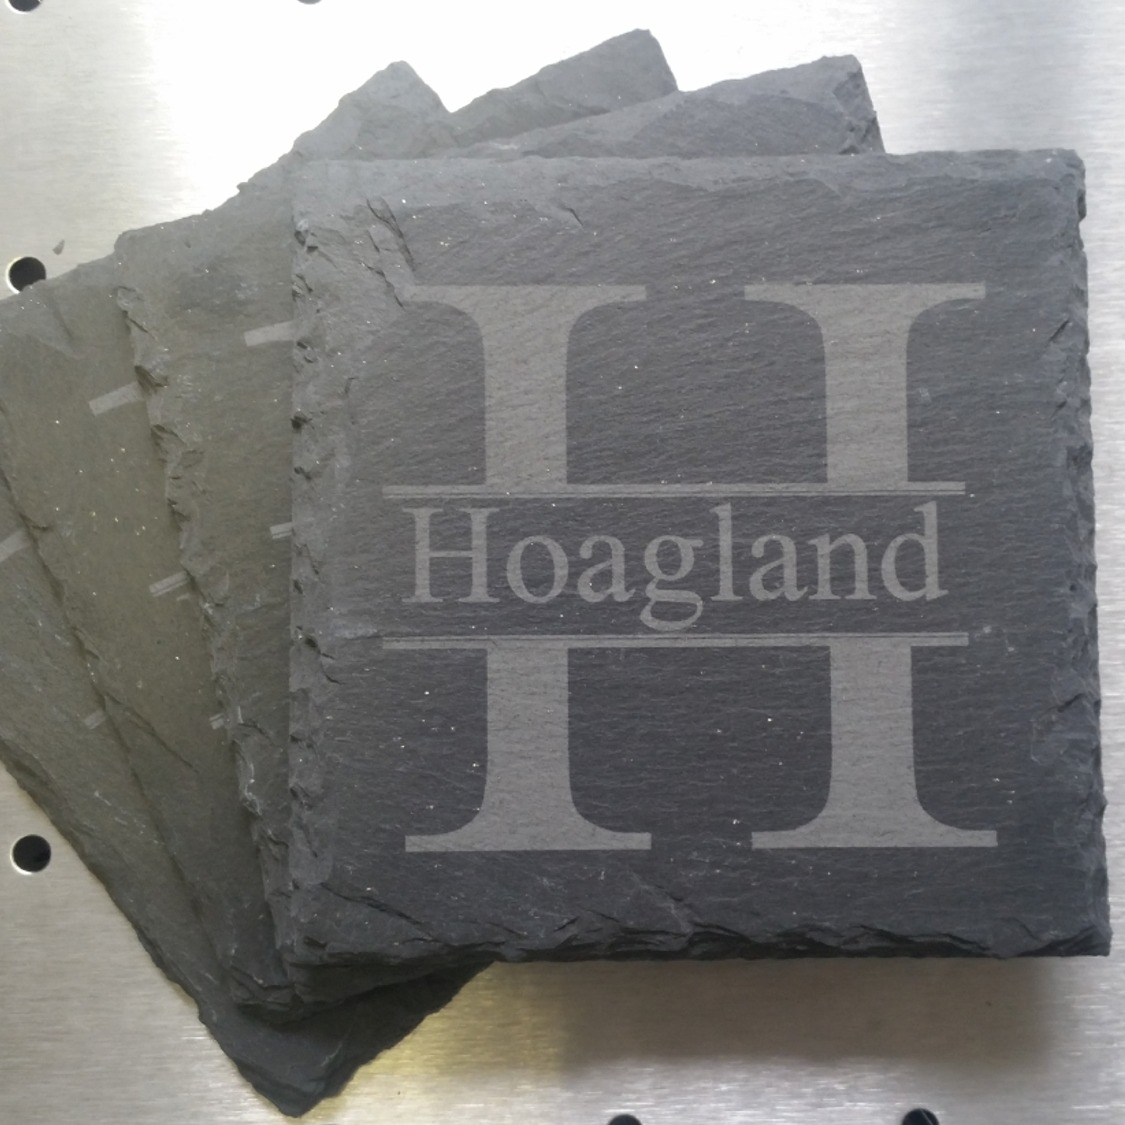 Personalized Last Name & First Initial of Last Name Laser-Engraved Slate  Coasters